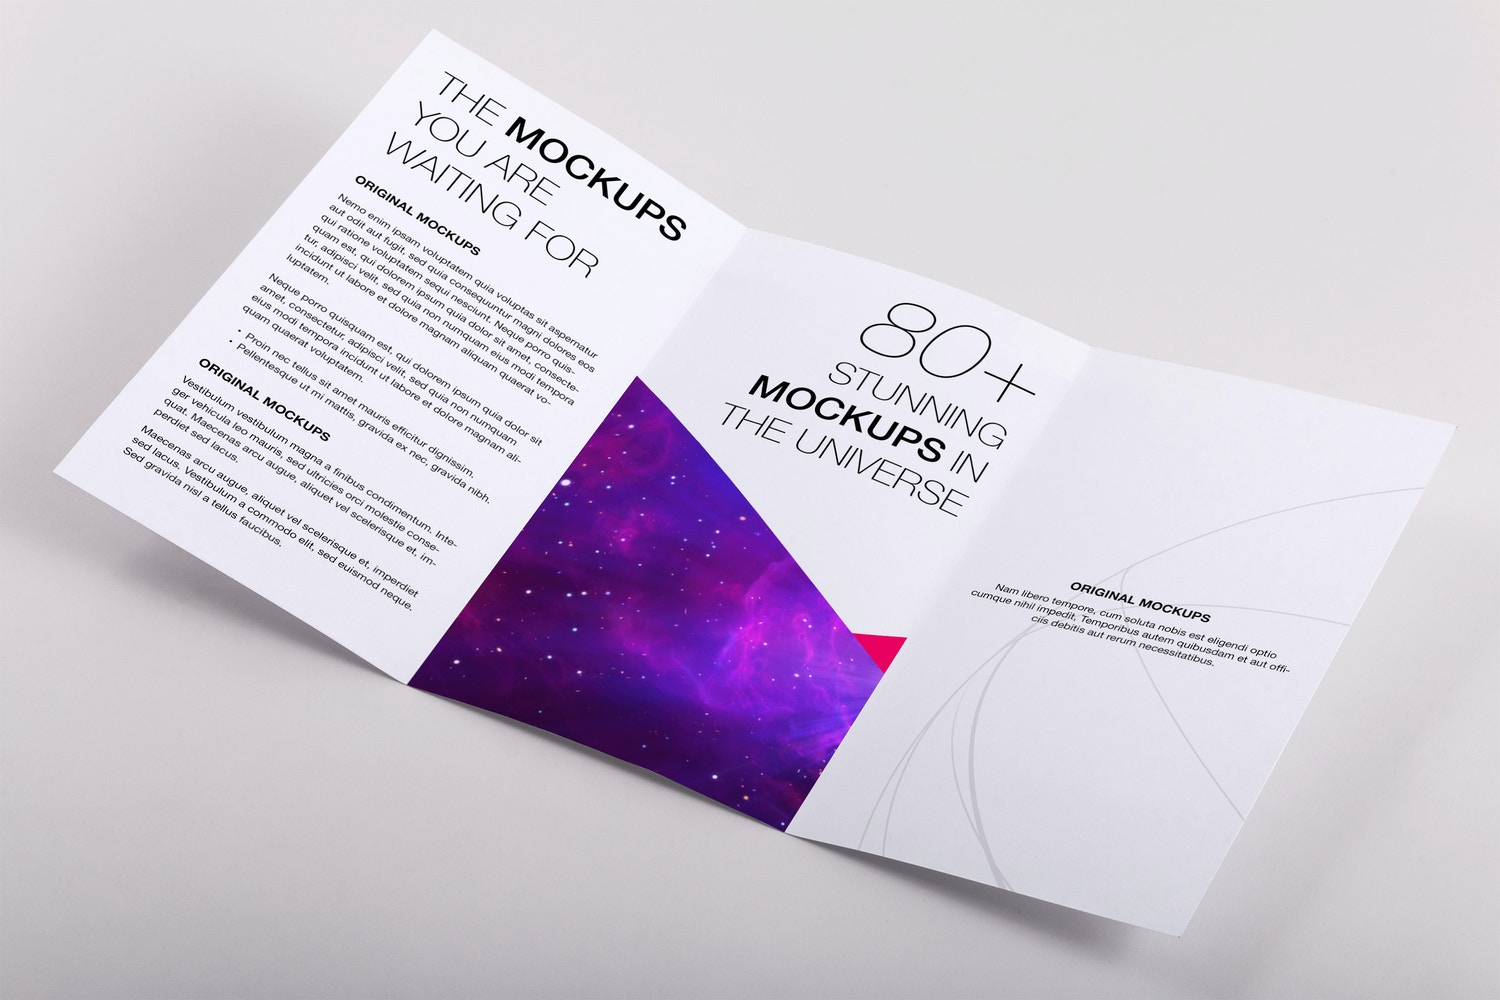 Legal Trifold Brochure PSD Mockup 03 by Original Mockups on Original Mockups